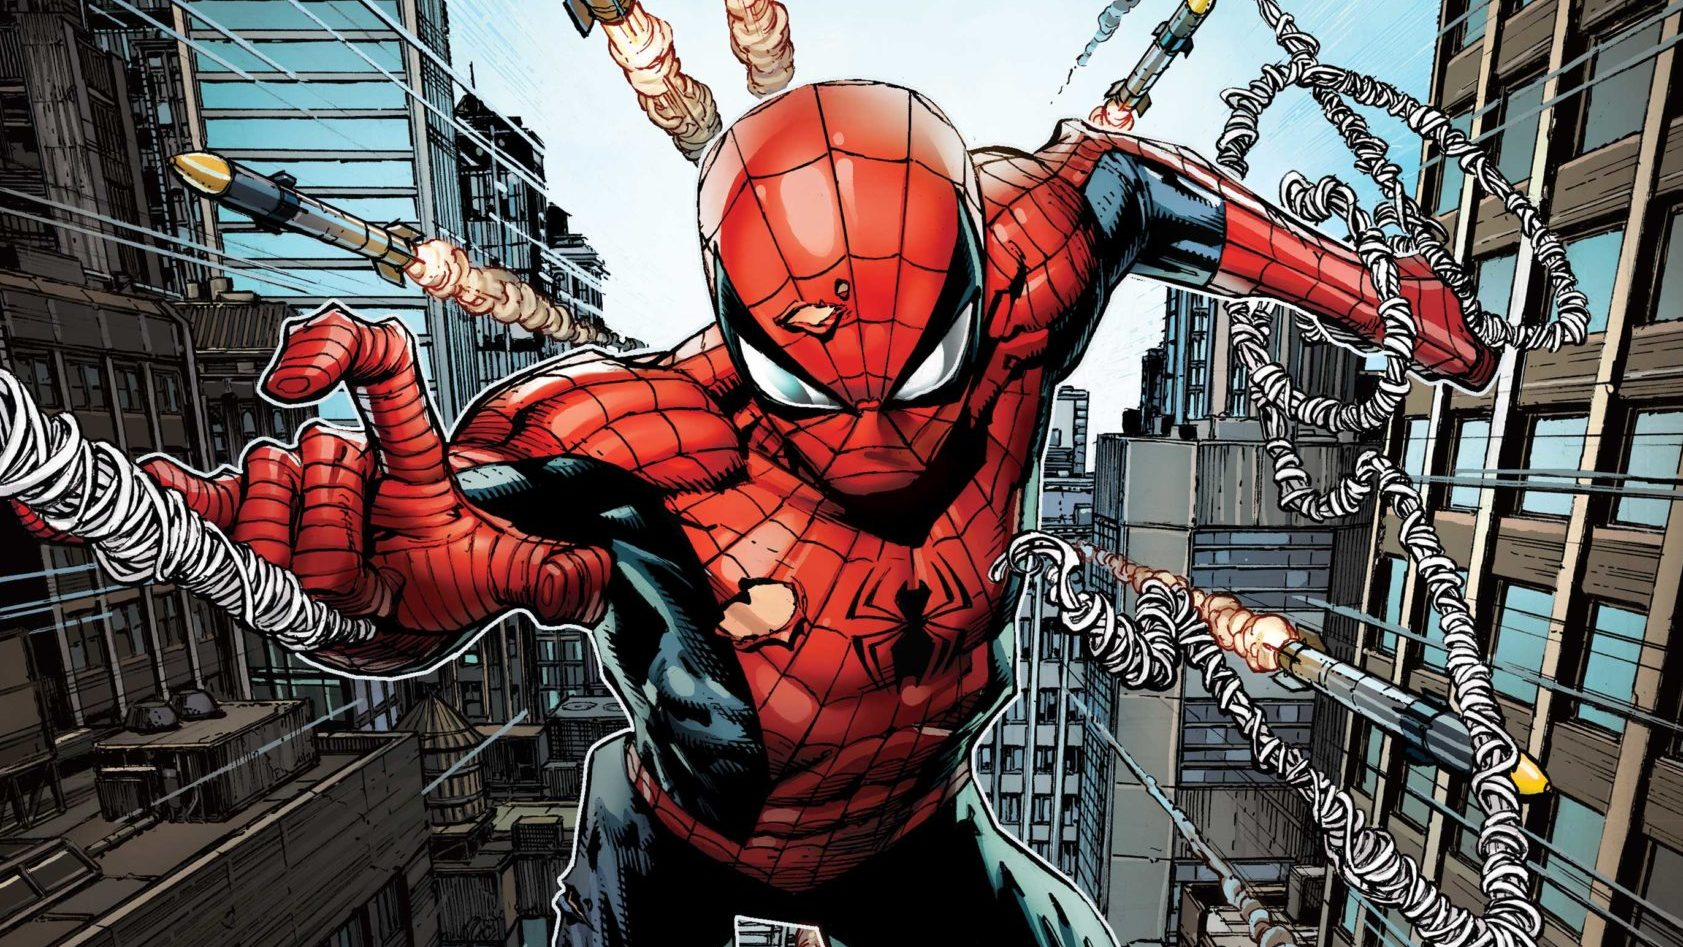 NON-STOP SPIDER-MAN swings into stores this June